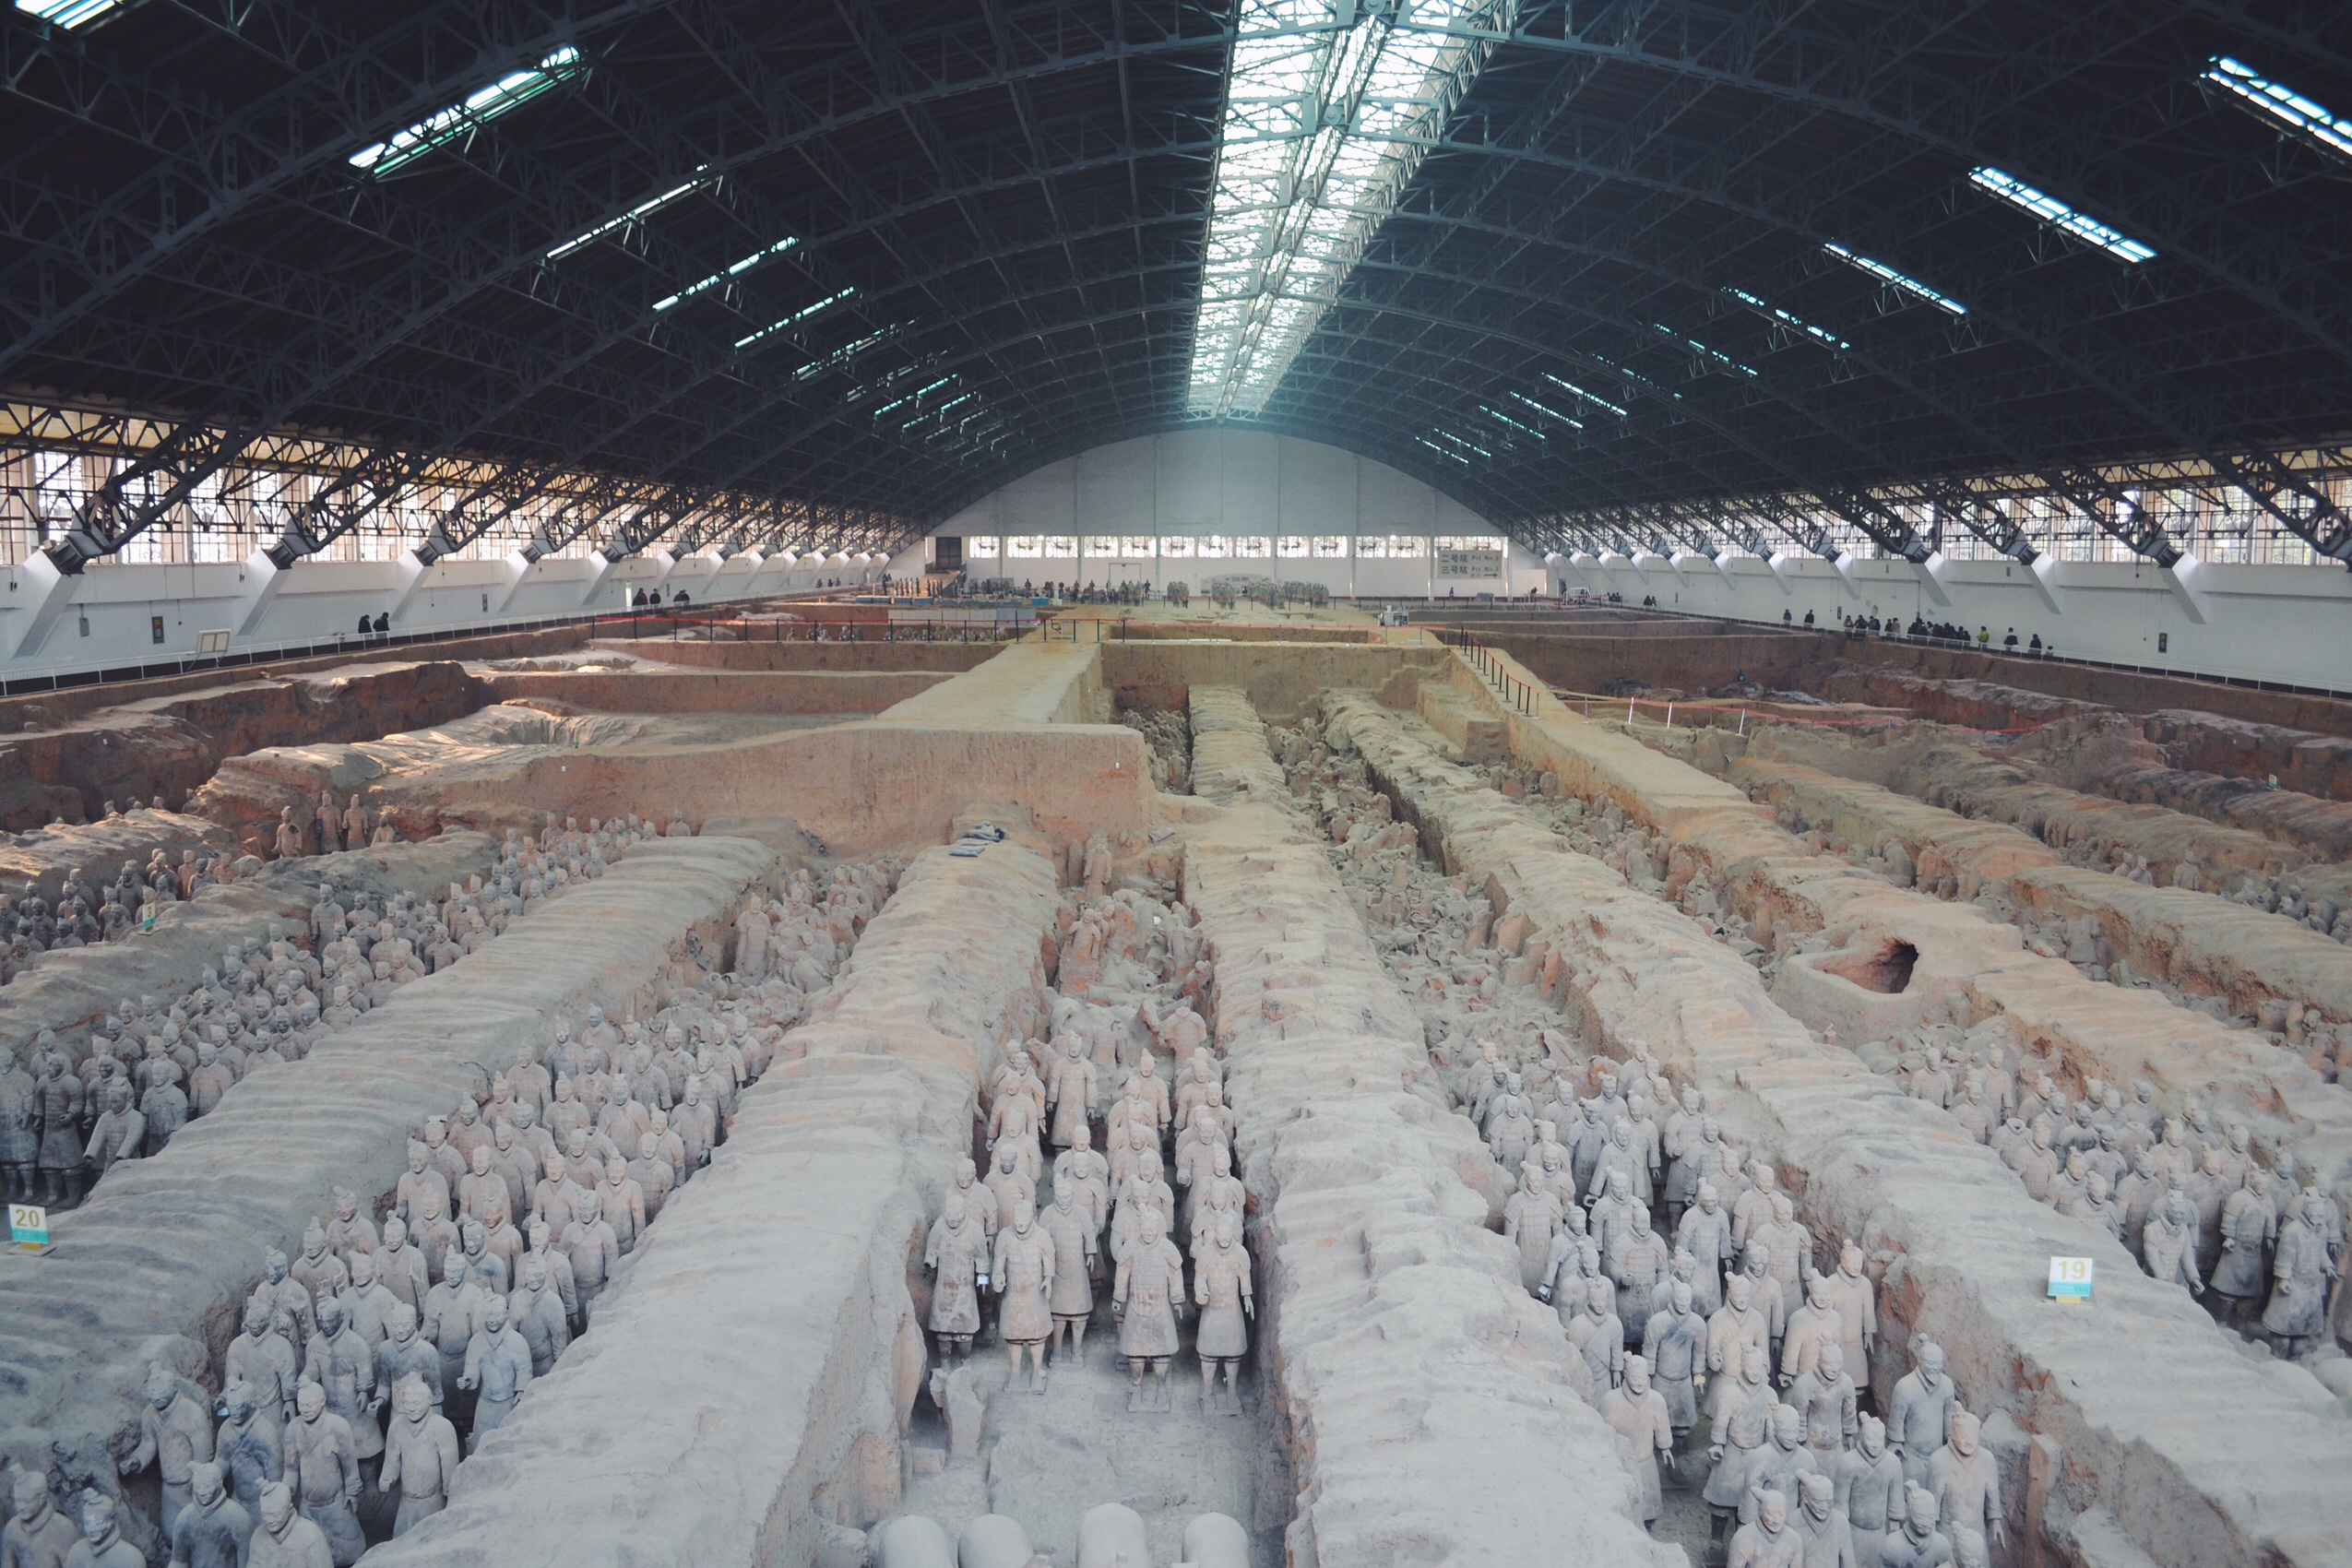 Image of terracotta warriors in China